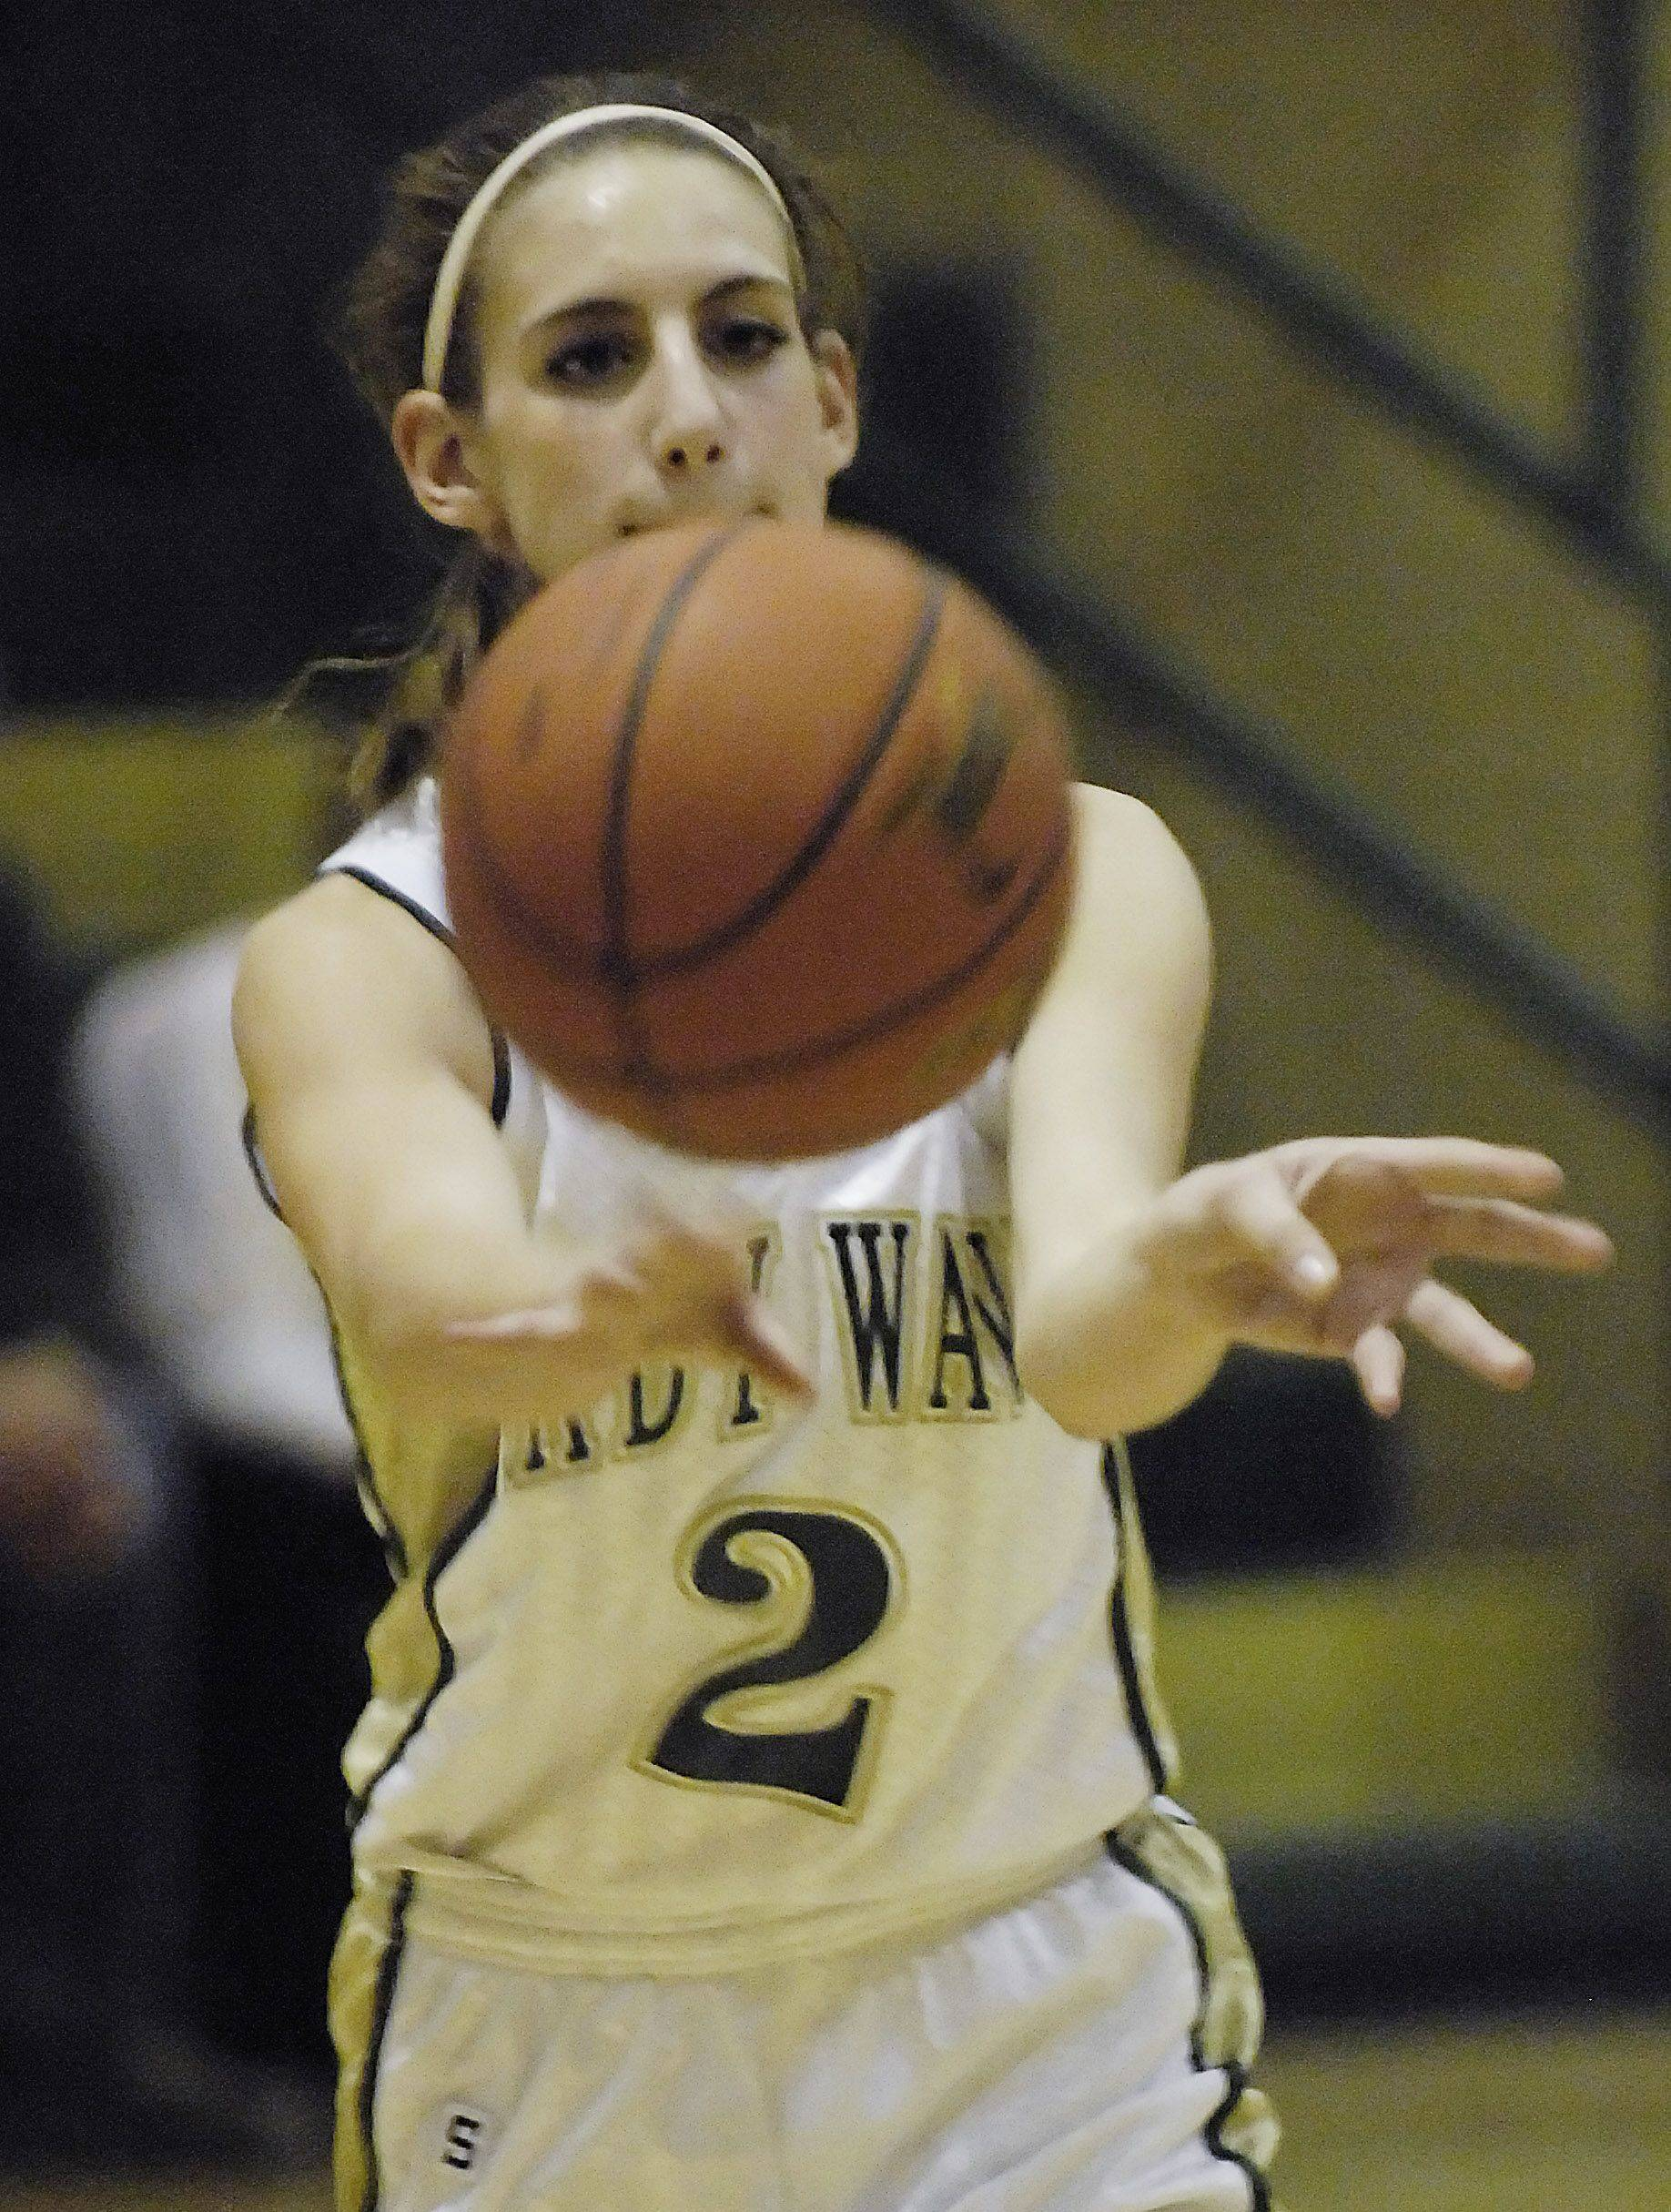 Images from the Rosary at St. Edward girls basketball game Thursday, December 2, 2010.